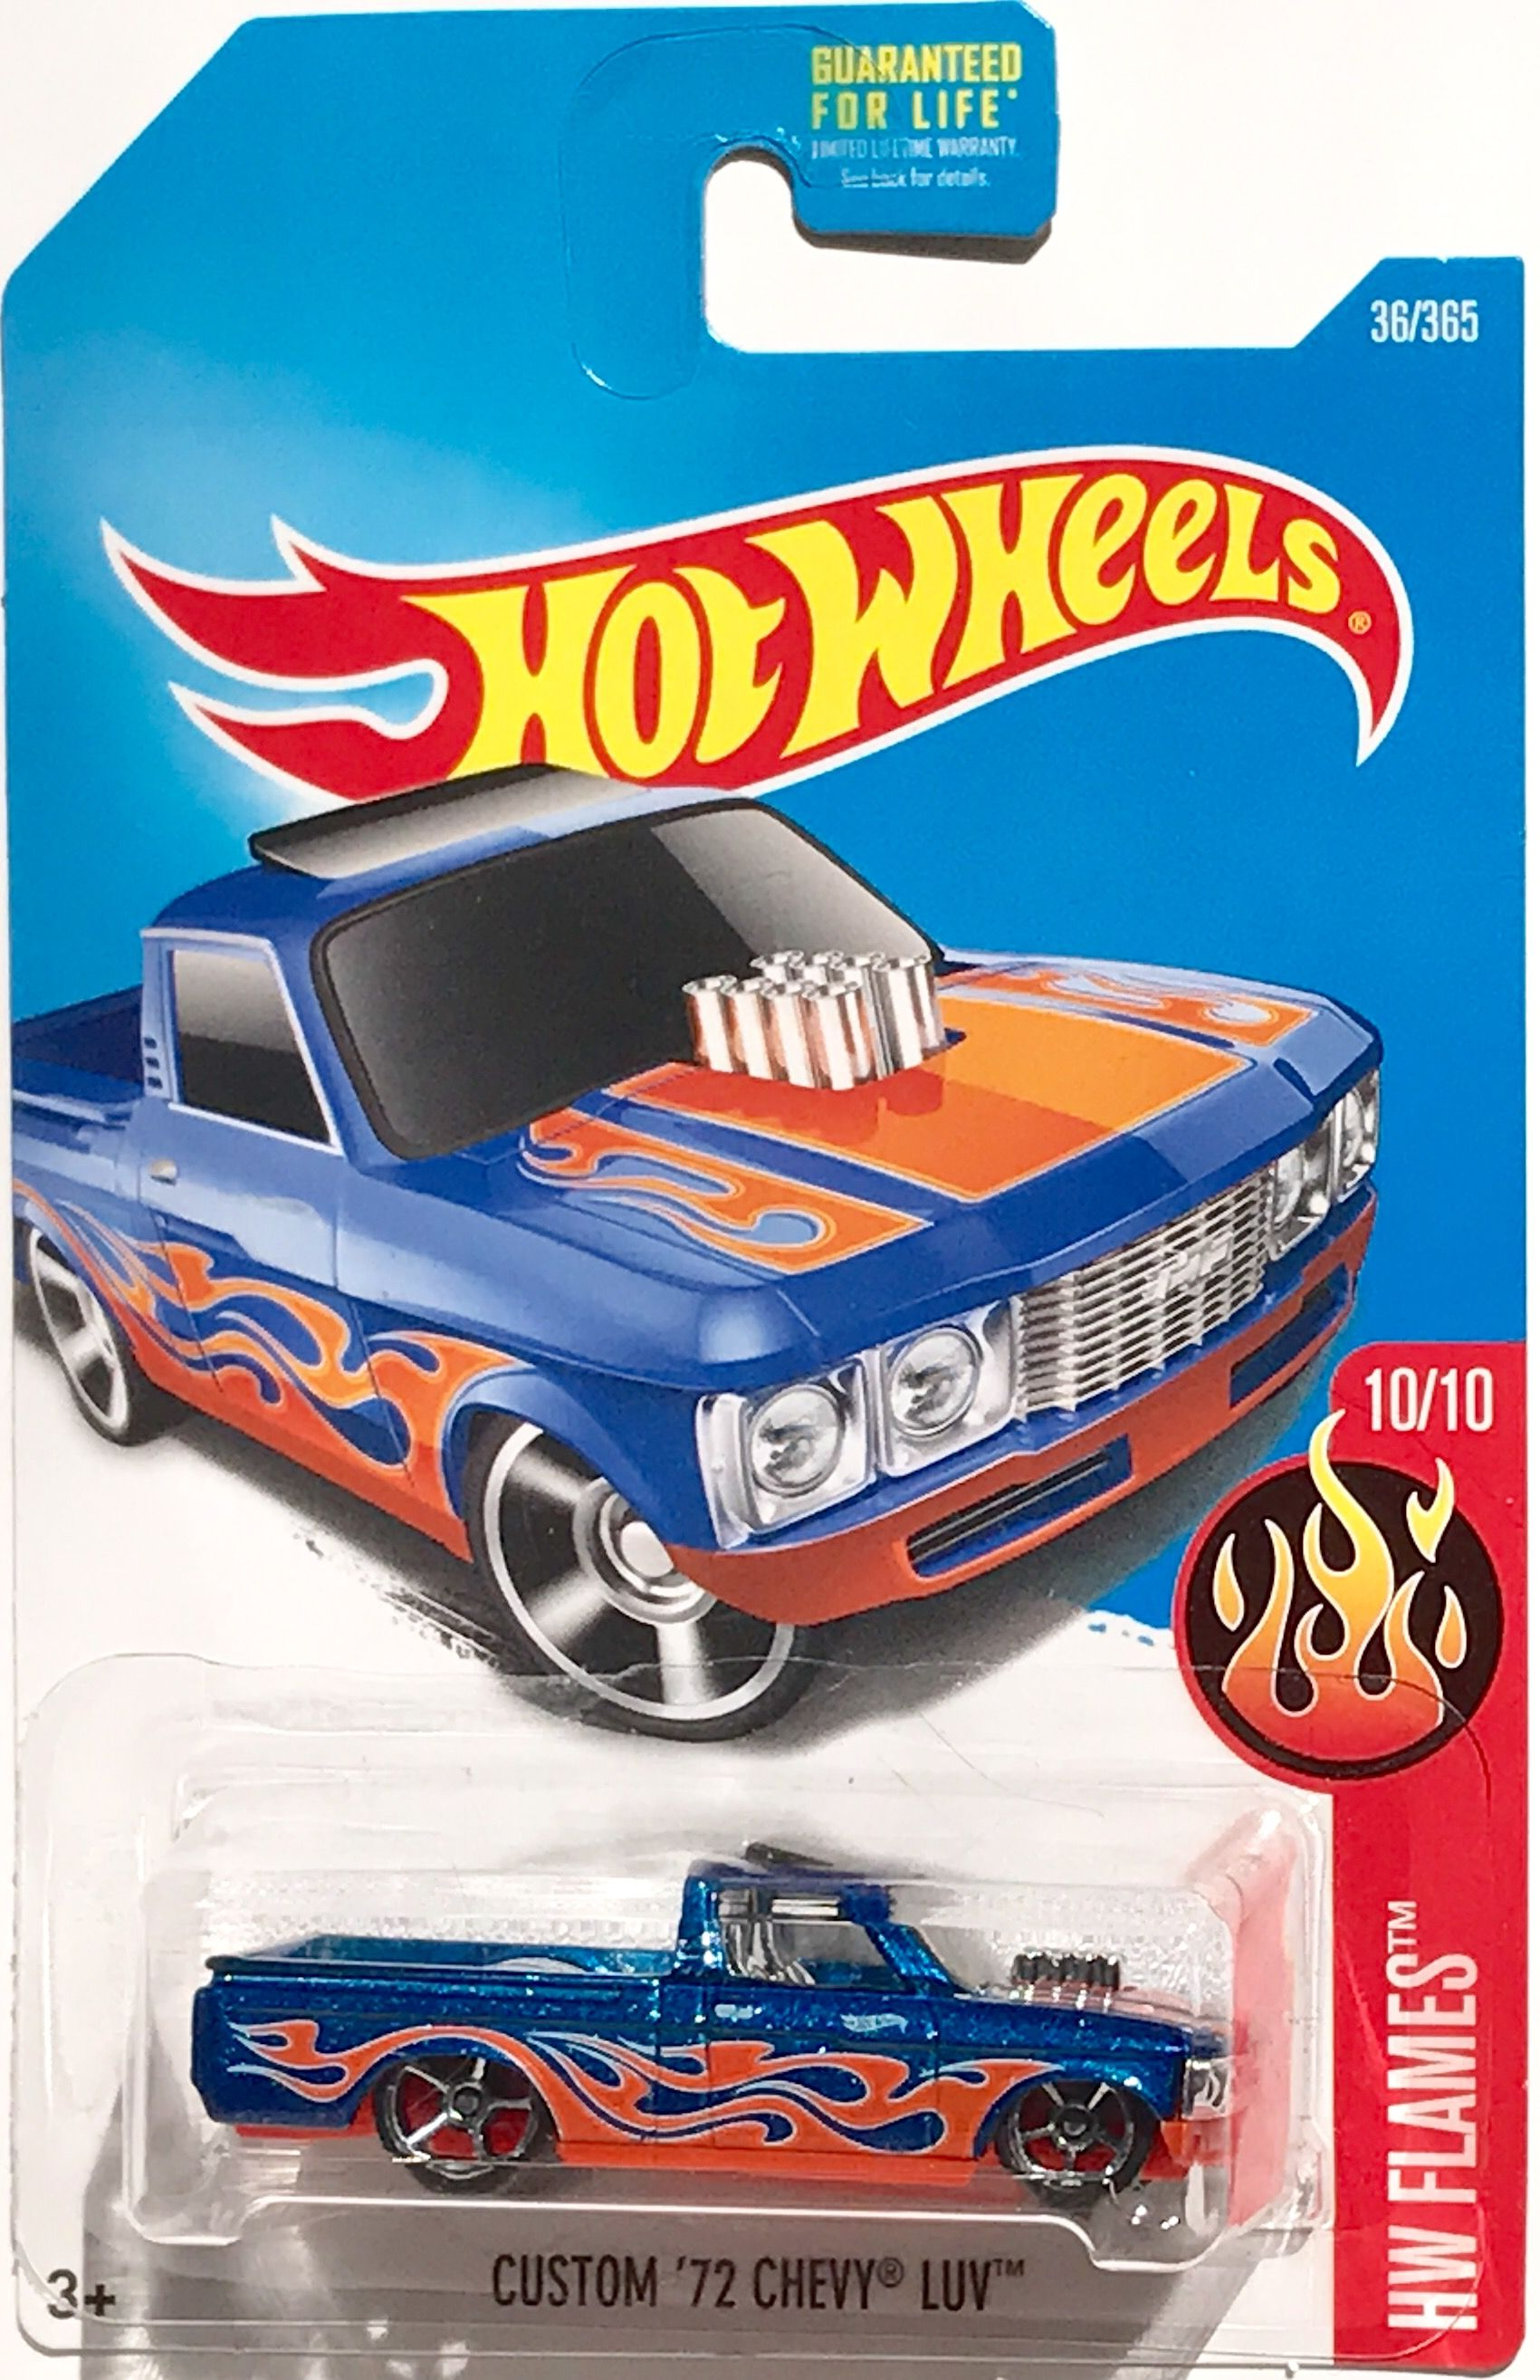 1972 Chevy Luv Hot Wheels Flames 2017 Hot Wheels Toys Chevy